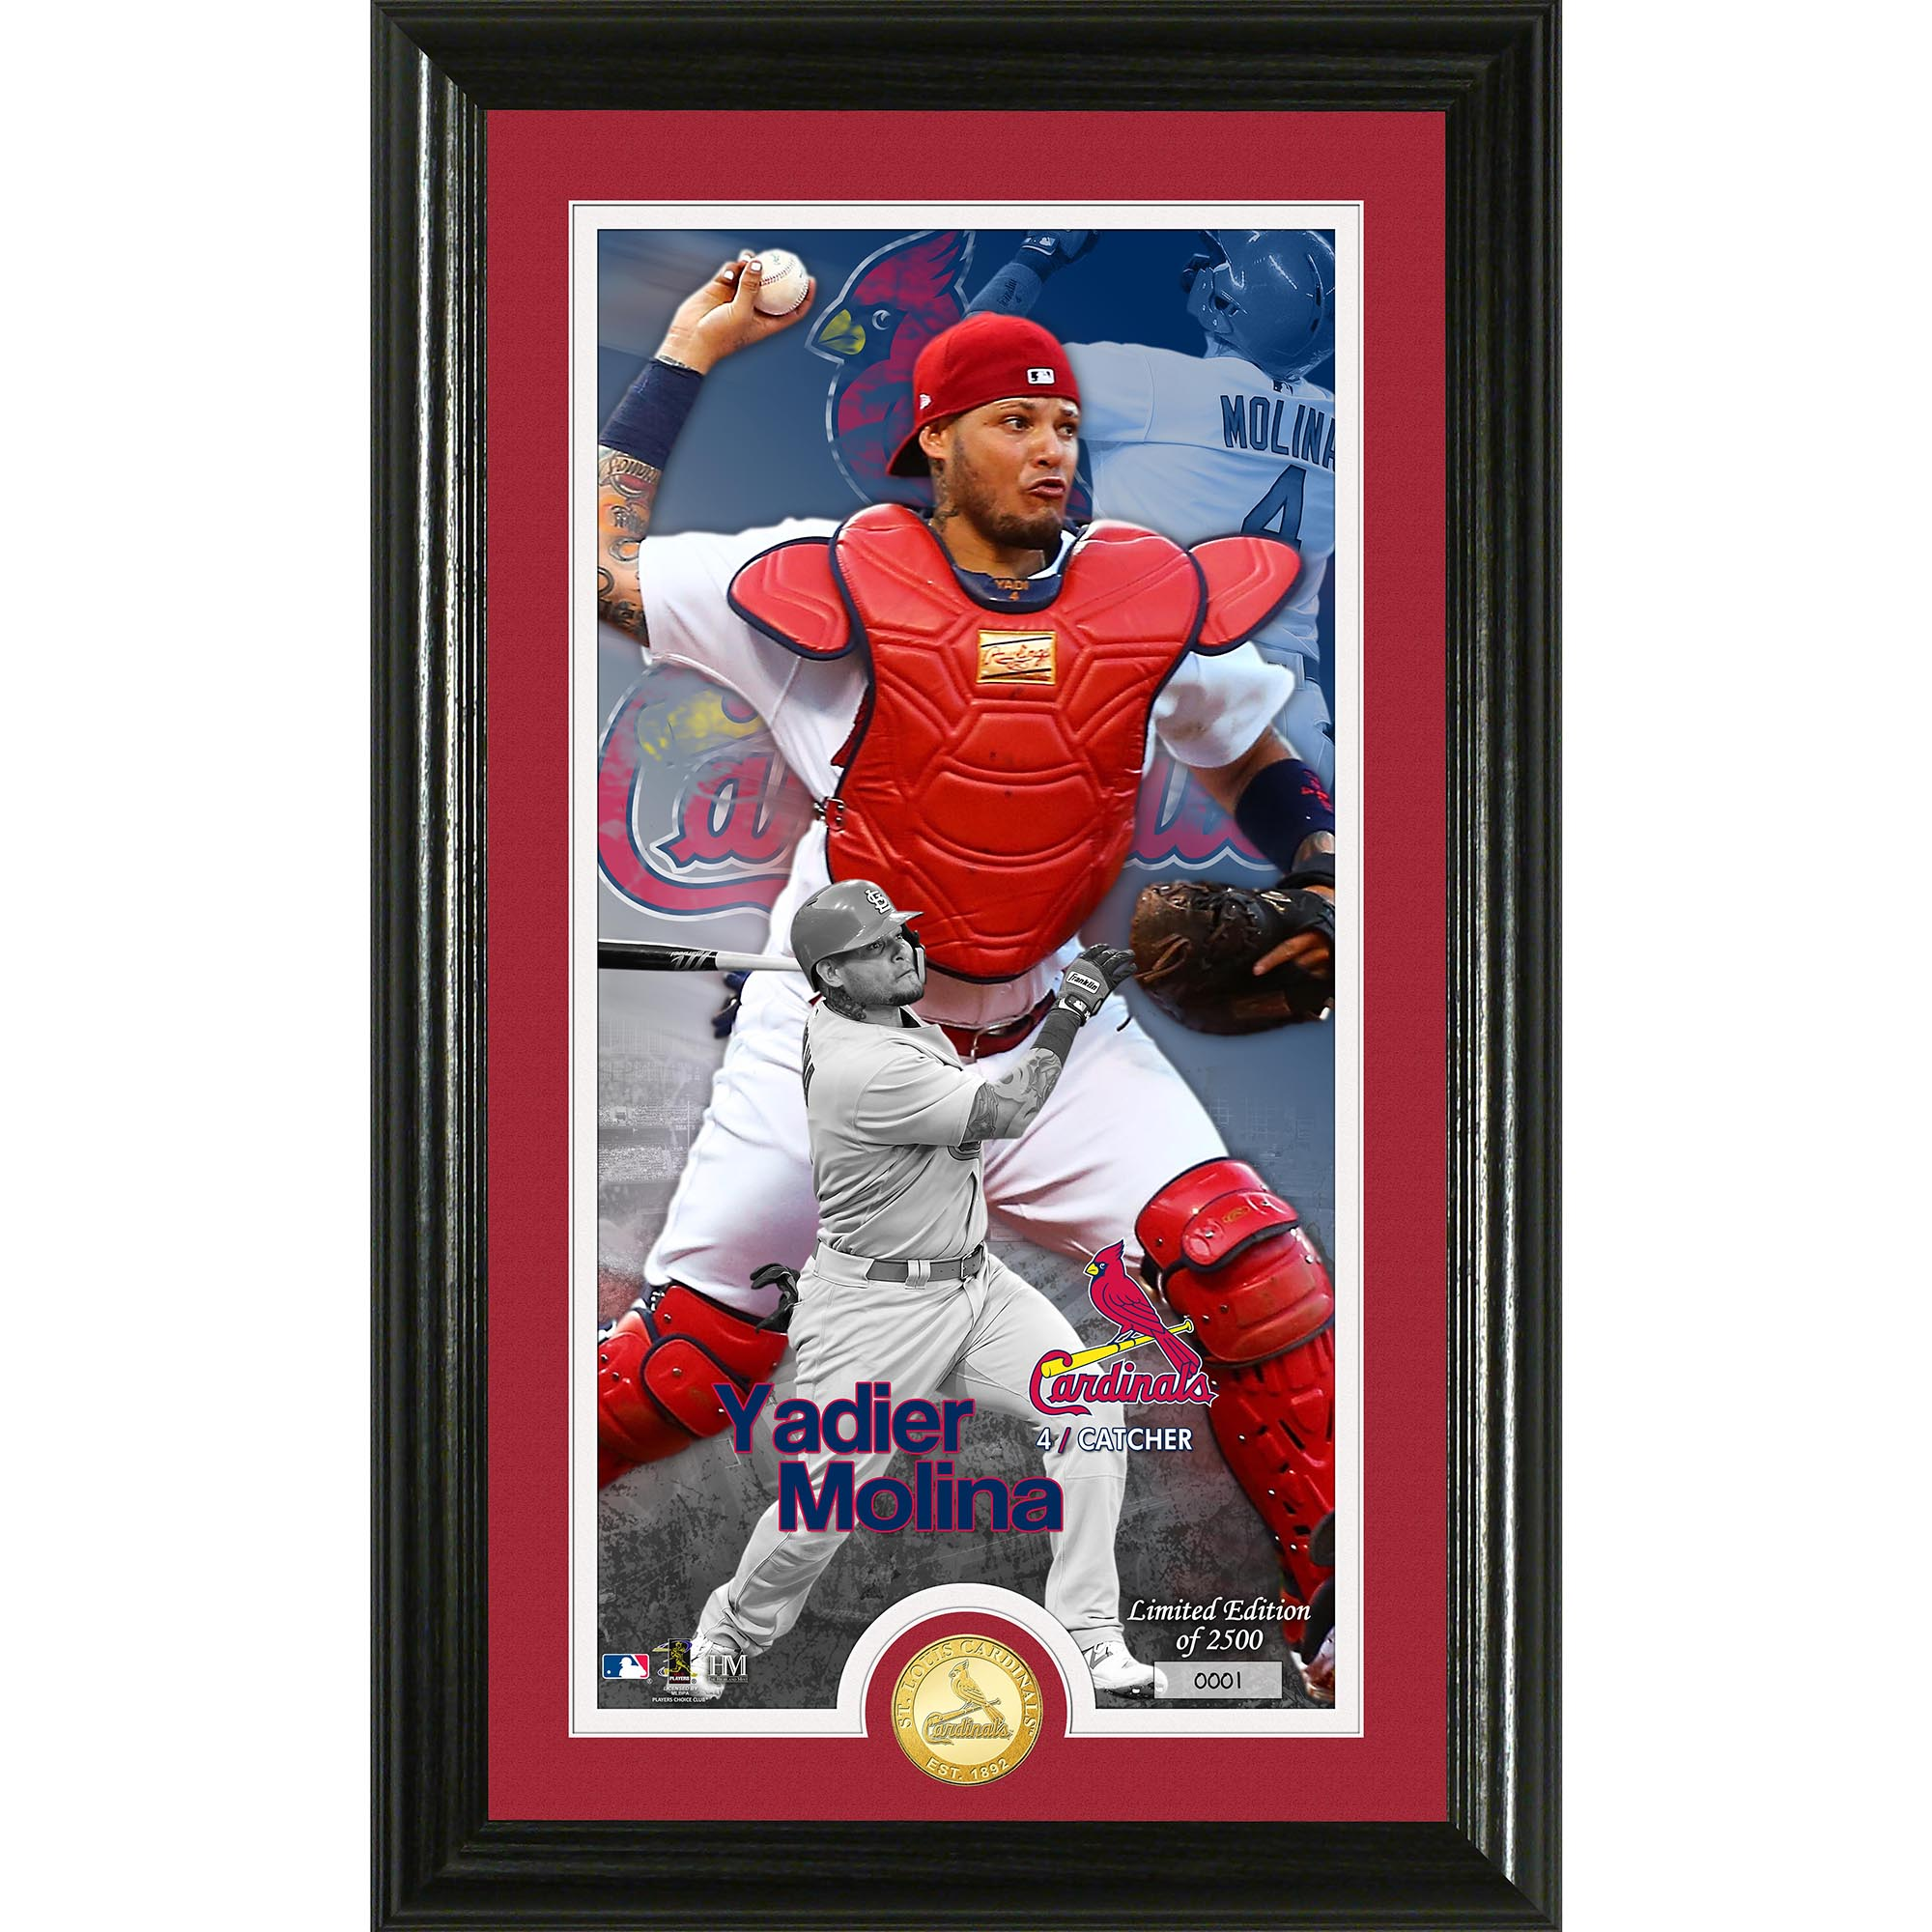 "Yadier Molina St. Louis Cardinals Highland Mint 12"" x 20"" Player Supreme Photo Mint - No Size"